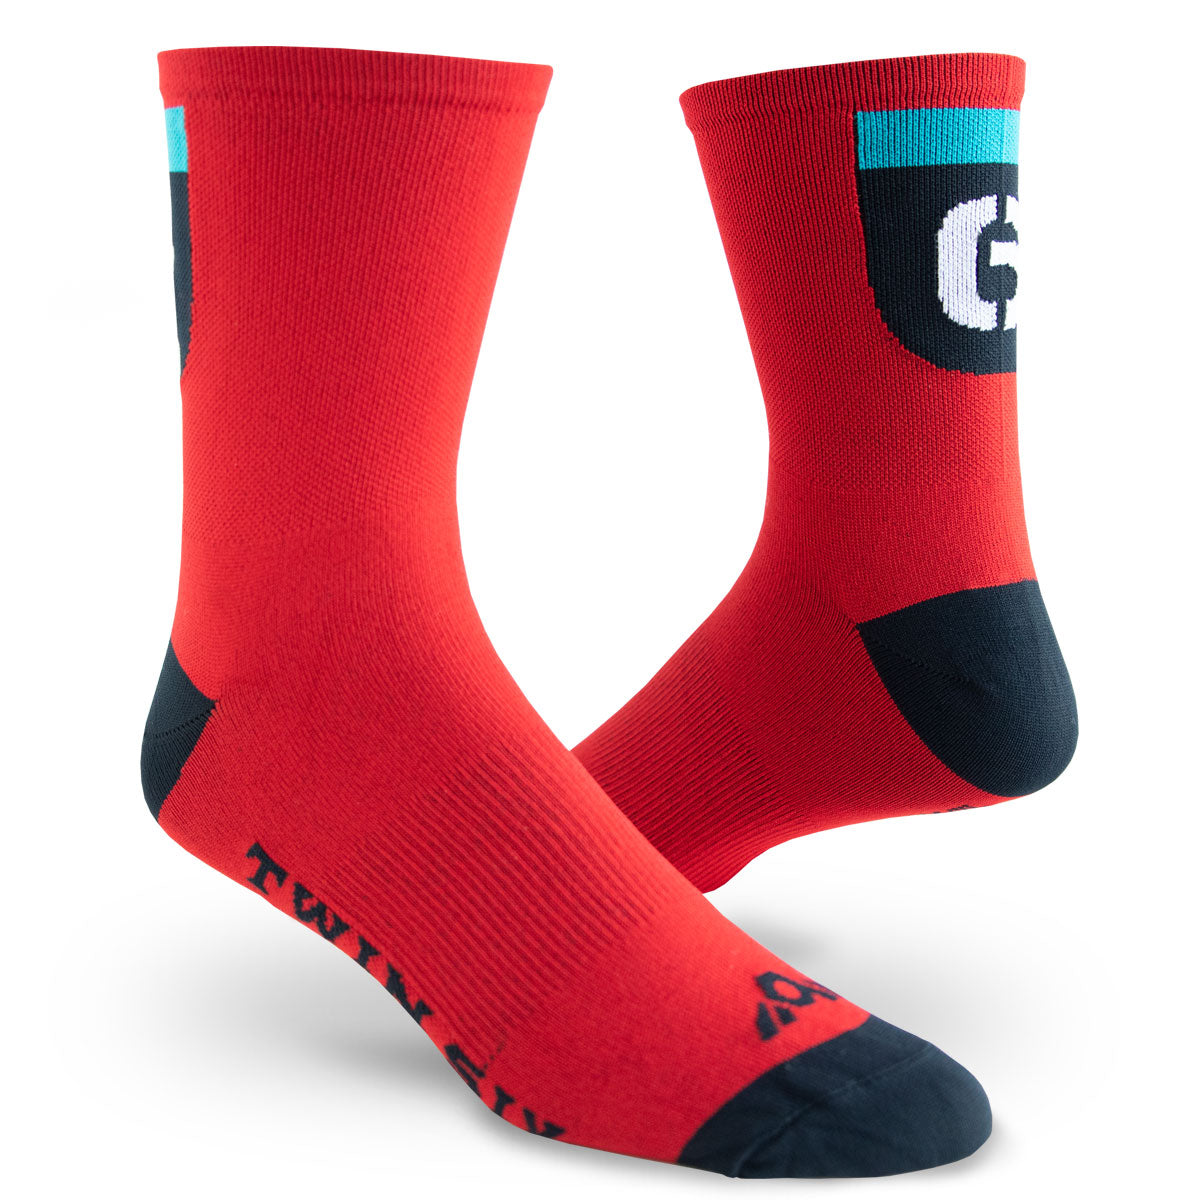 Motor Socks (TEAL)